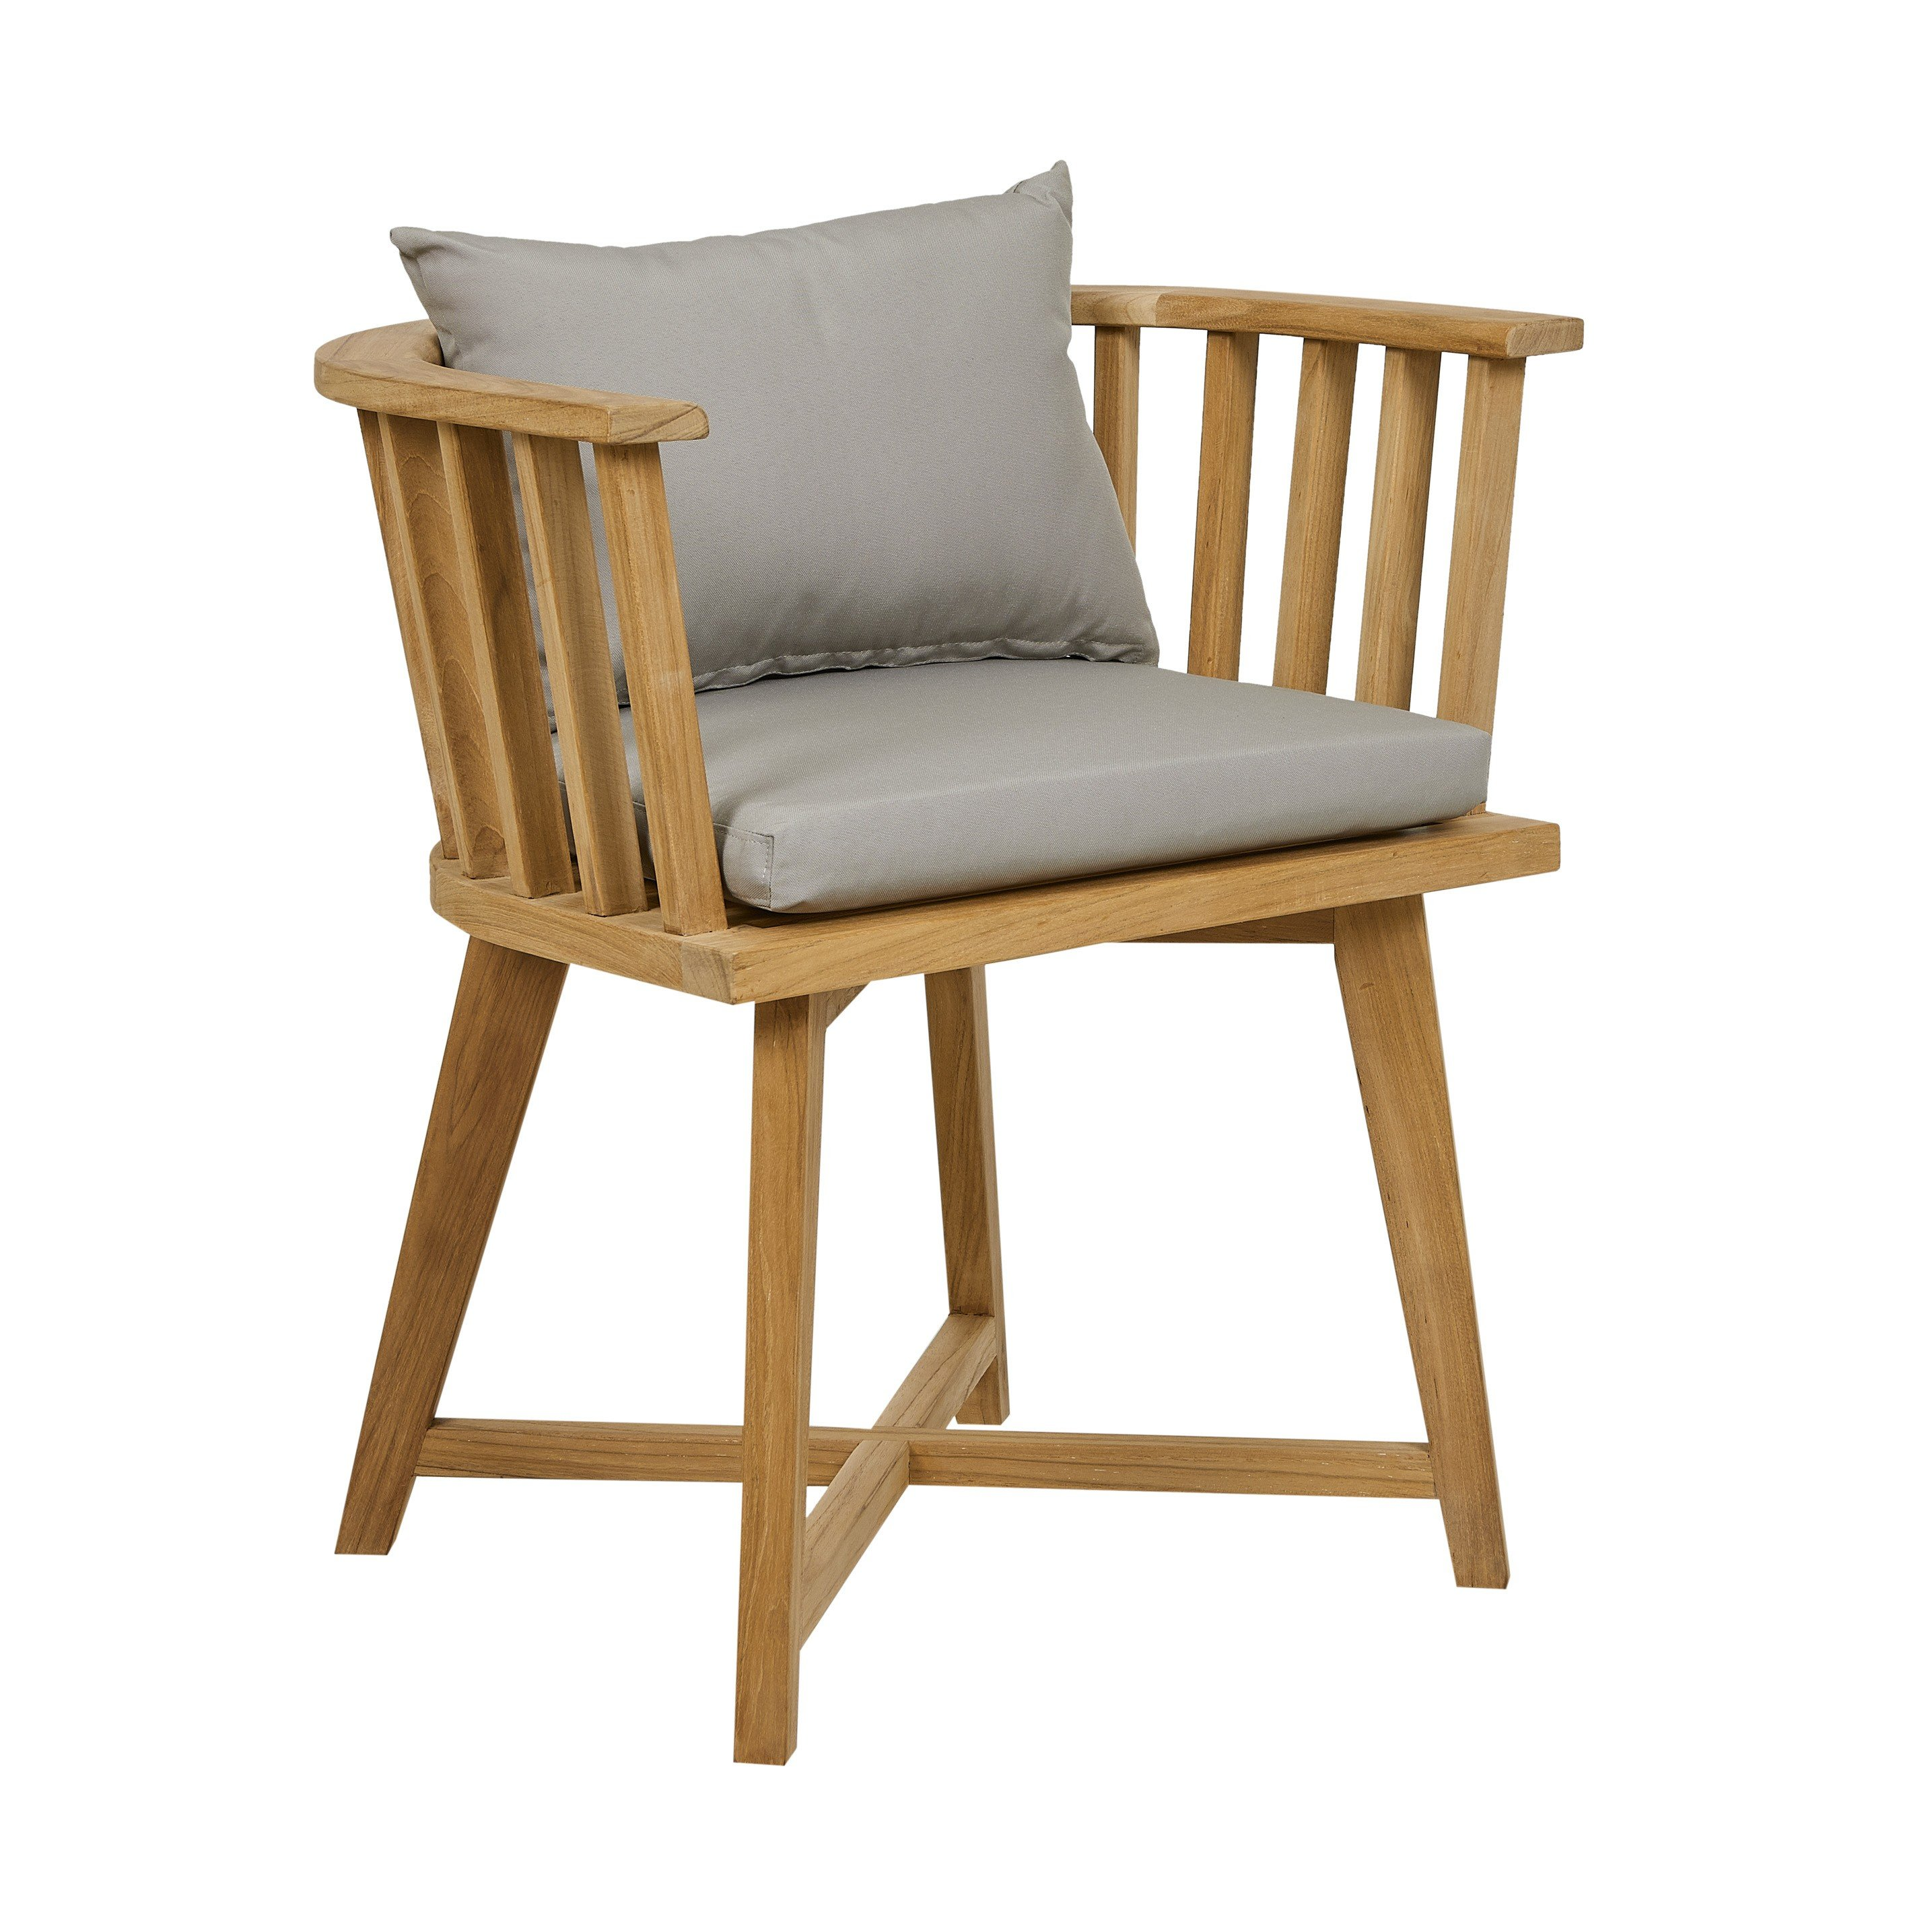 Furniture Hero-Images Dining-Chairs-Benches-and-Stools sonoma-slat-arm-chair-02